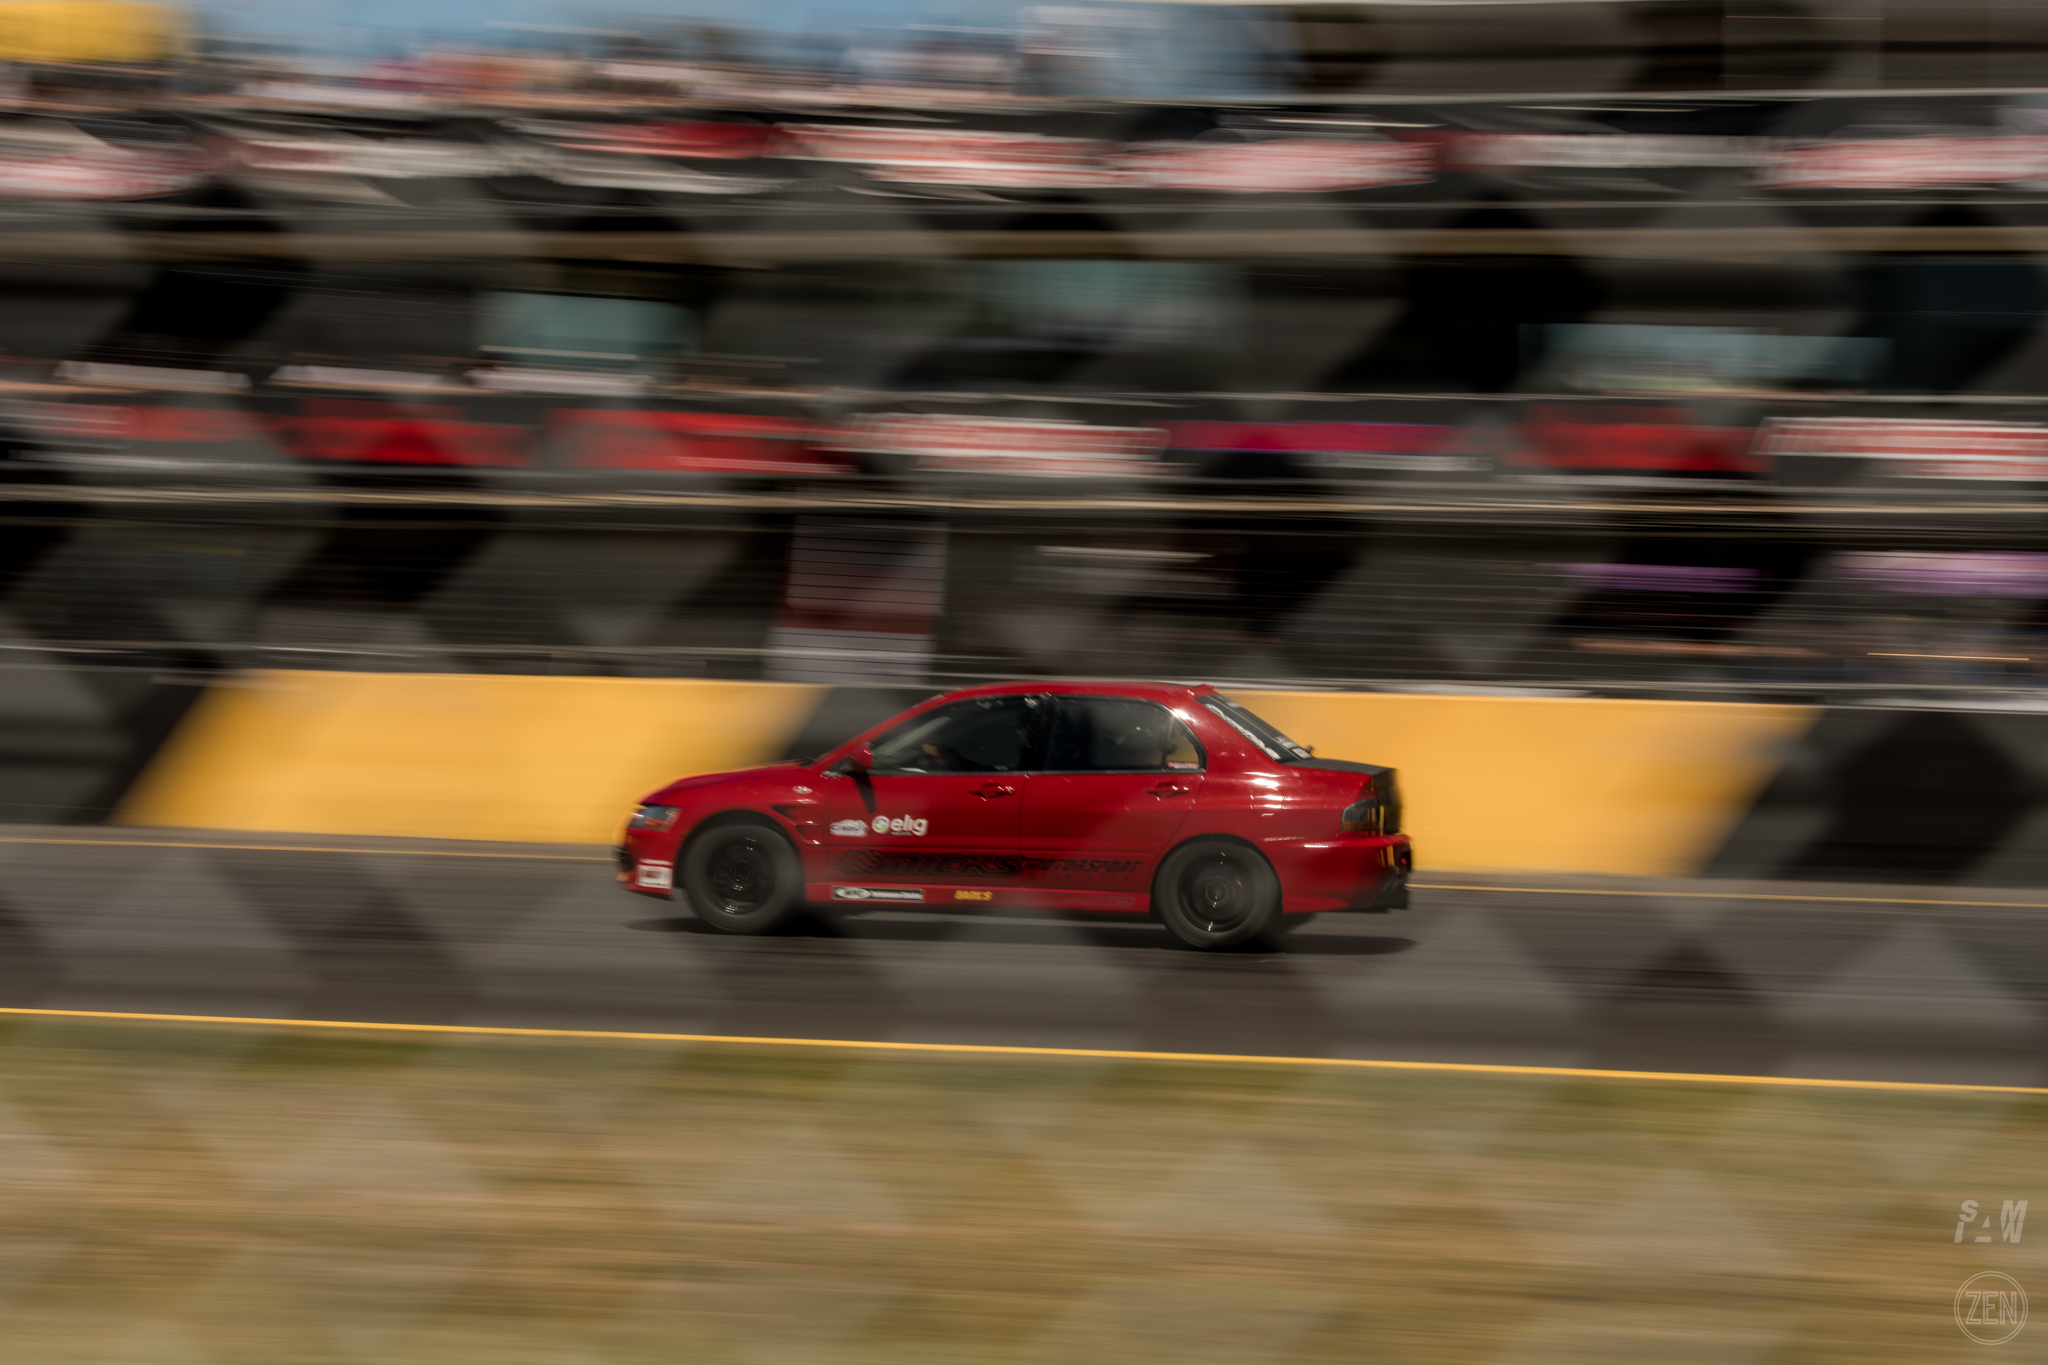 2019-10-18 - WTAC Day 01 014